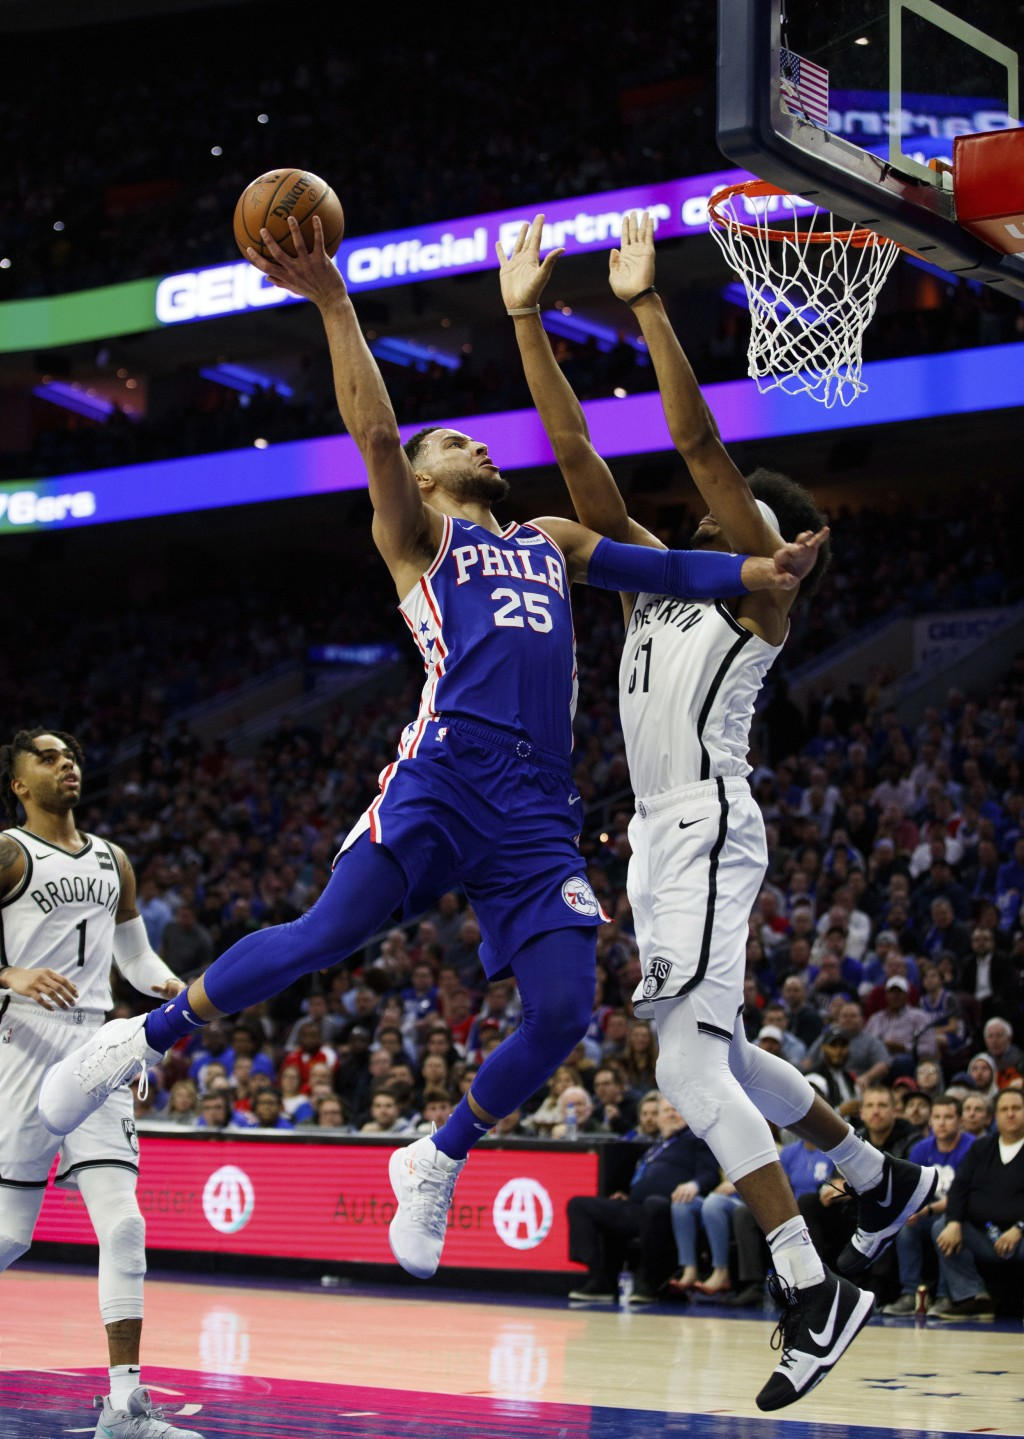 Philadelphia 76ers' Ben Simmons, left, of Australia, goes up for the shot against Brooklyn Nets' Jarrett Allen, right, during the first half in Game 2...